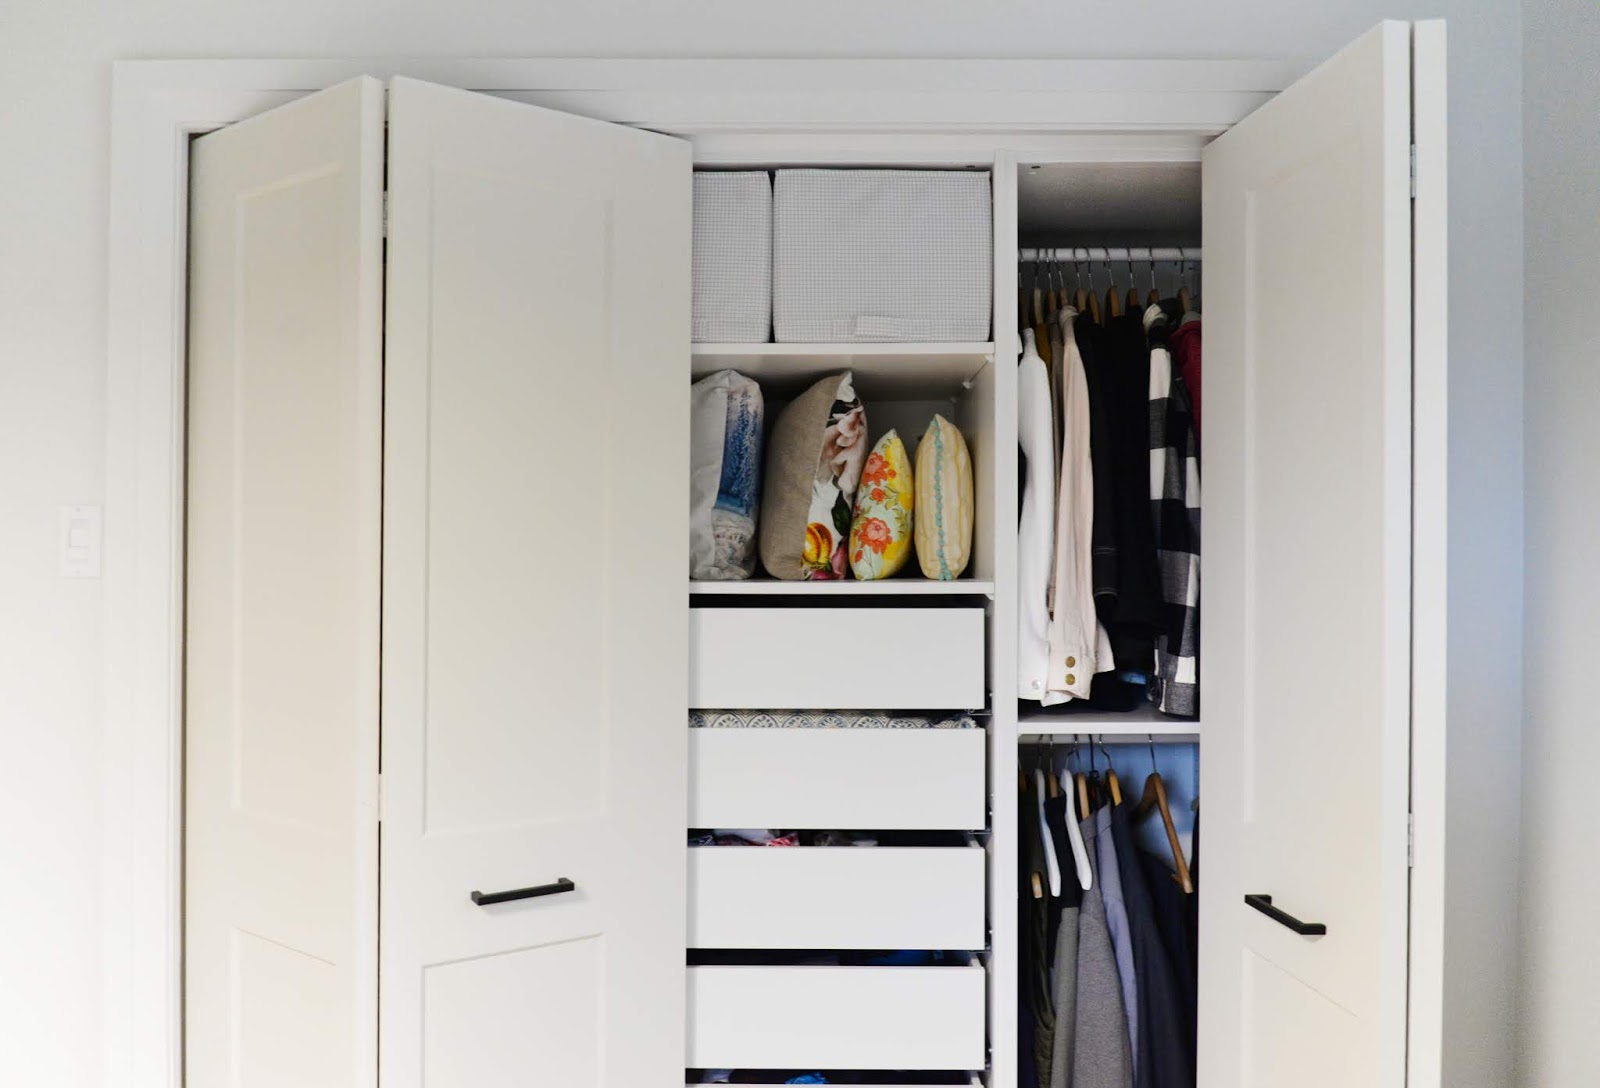 bifold door knob placement, how to install a bifold closet door, bifold closet door instructions, bifold knob placement